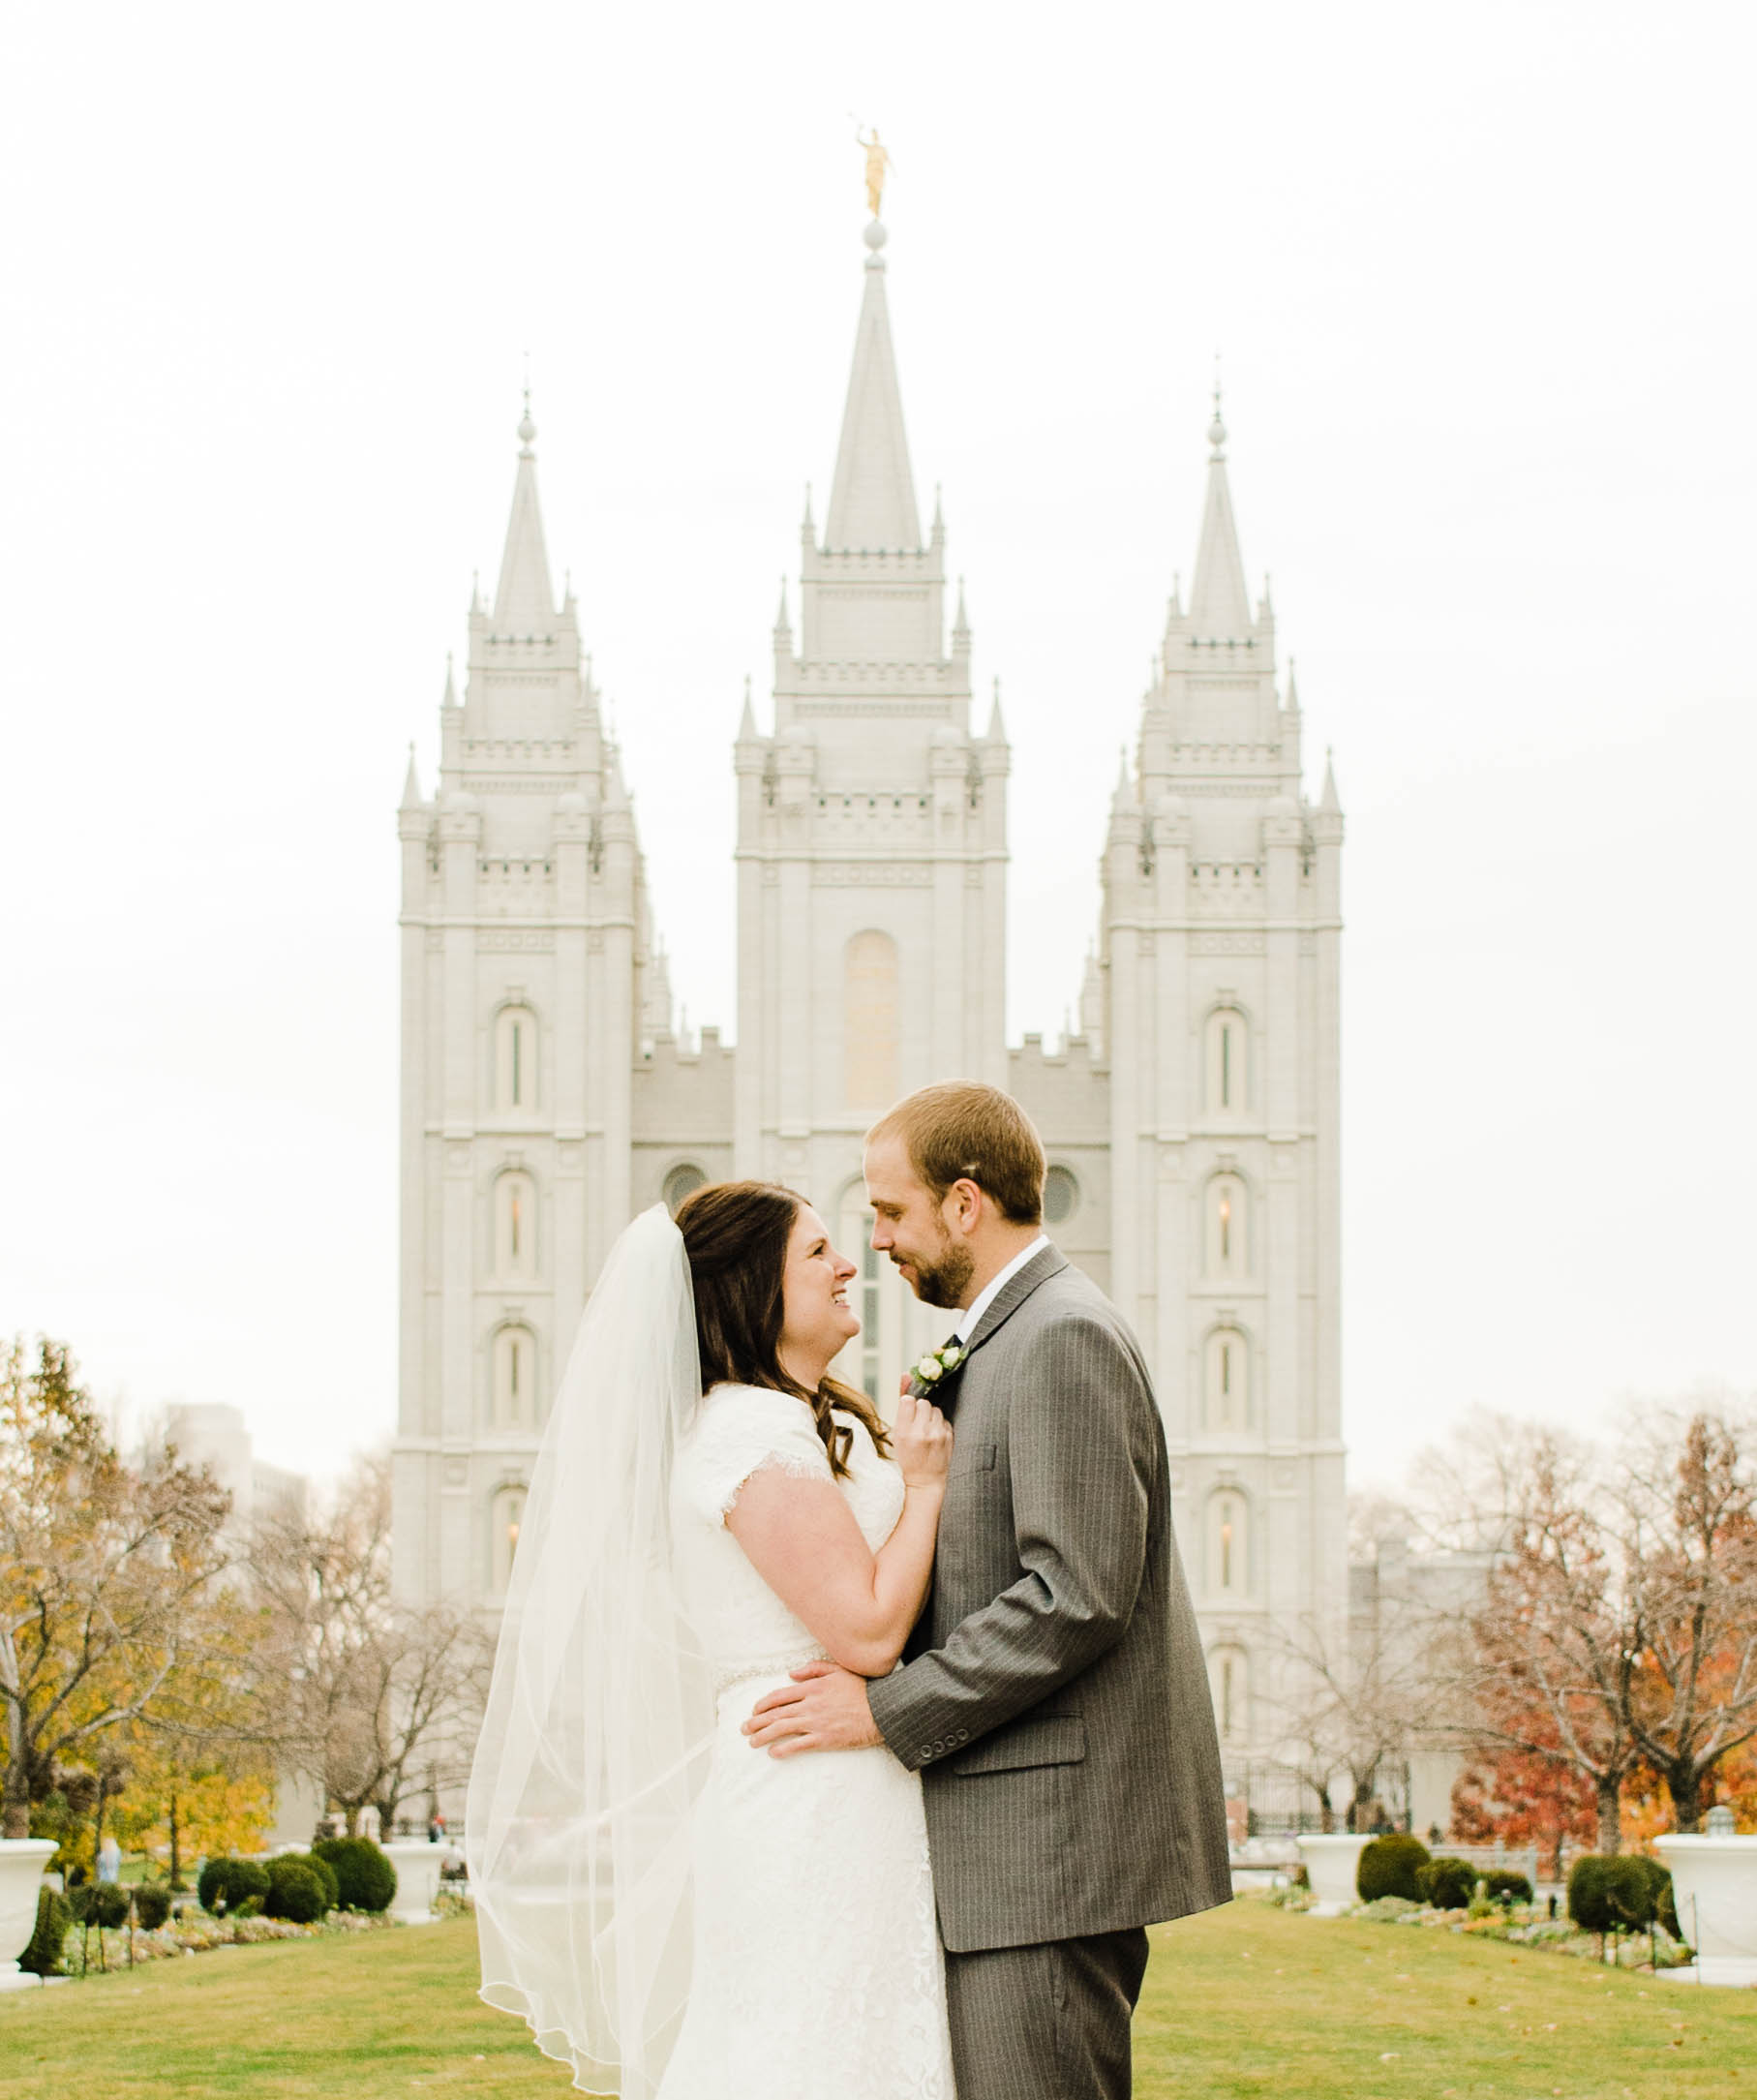 LINDSAY+BRAD-BRIDALS-Sadie_Banks_Photography-149.jpg